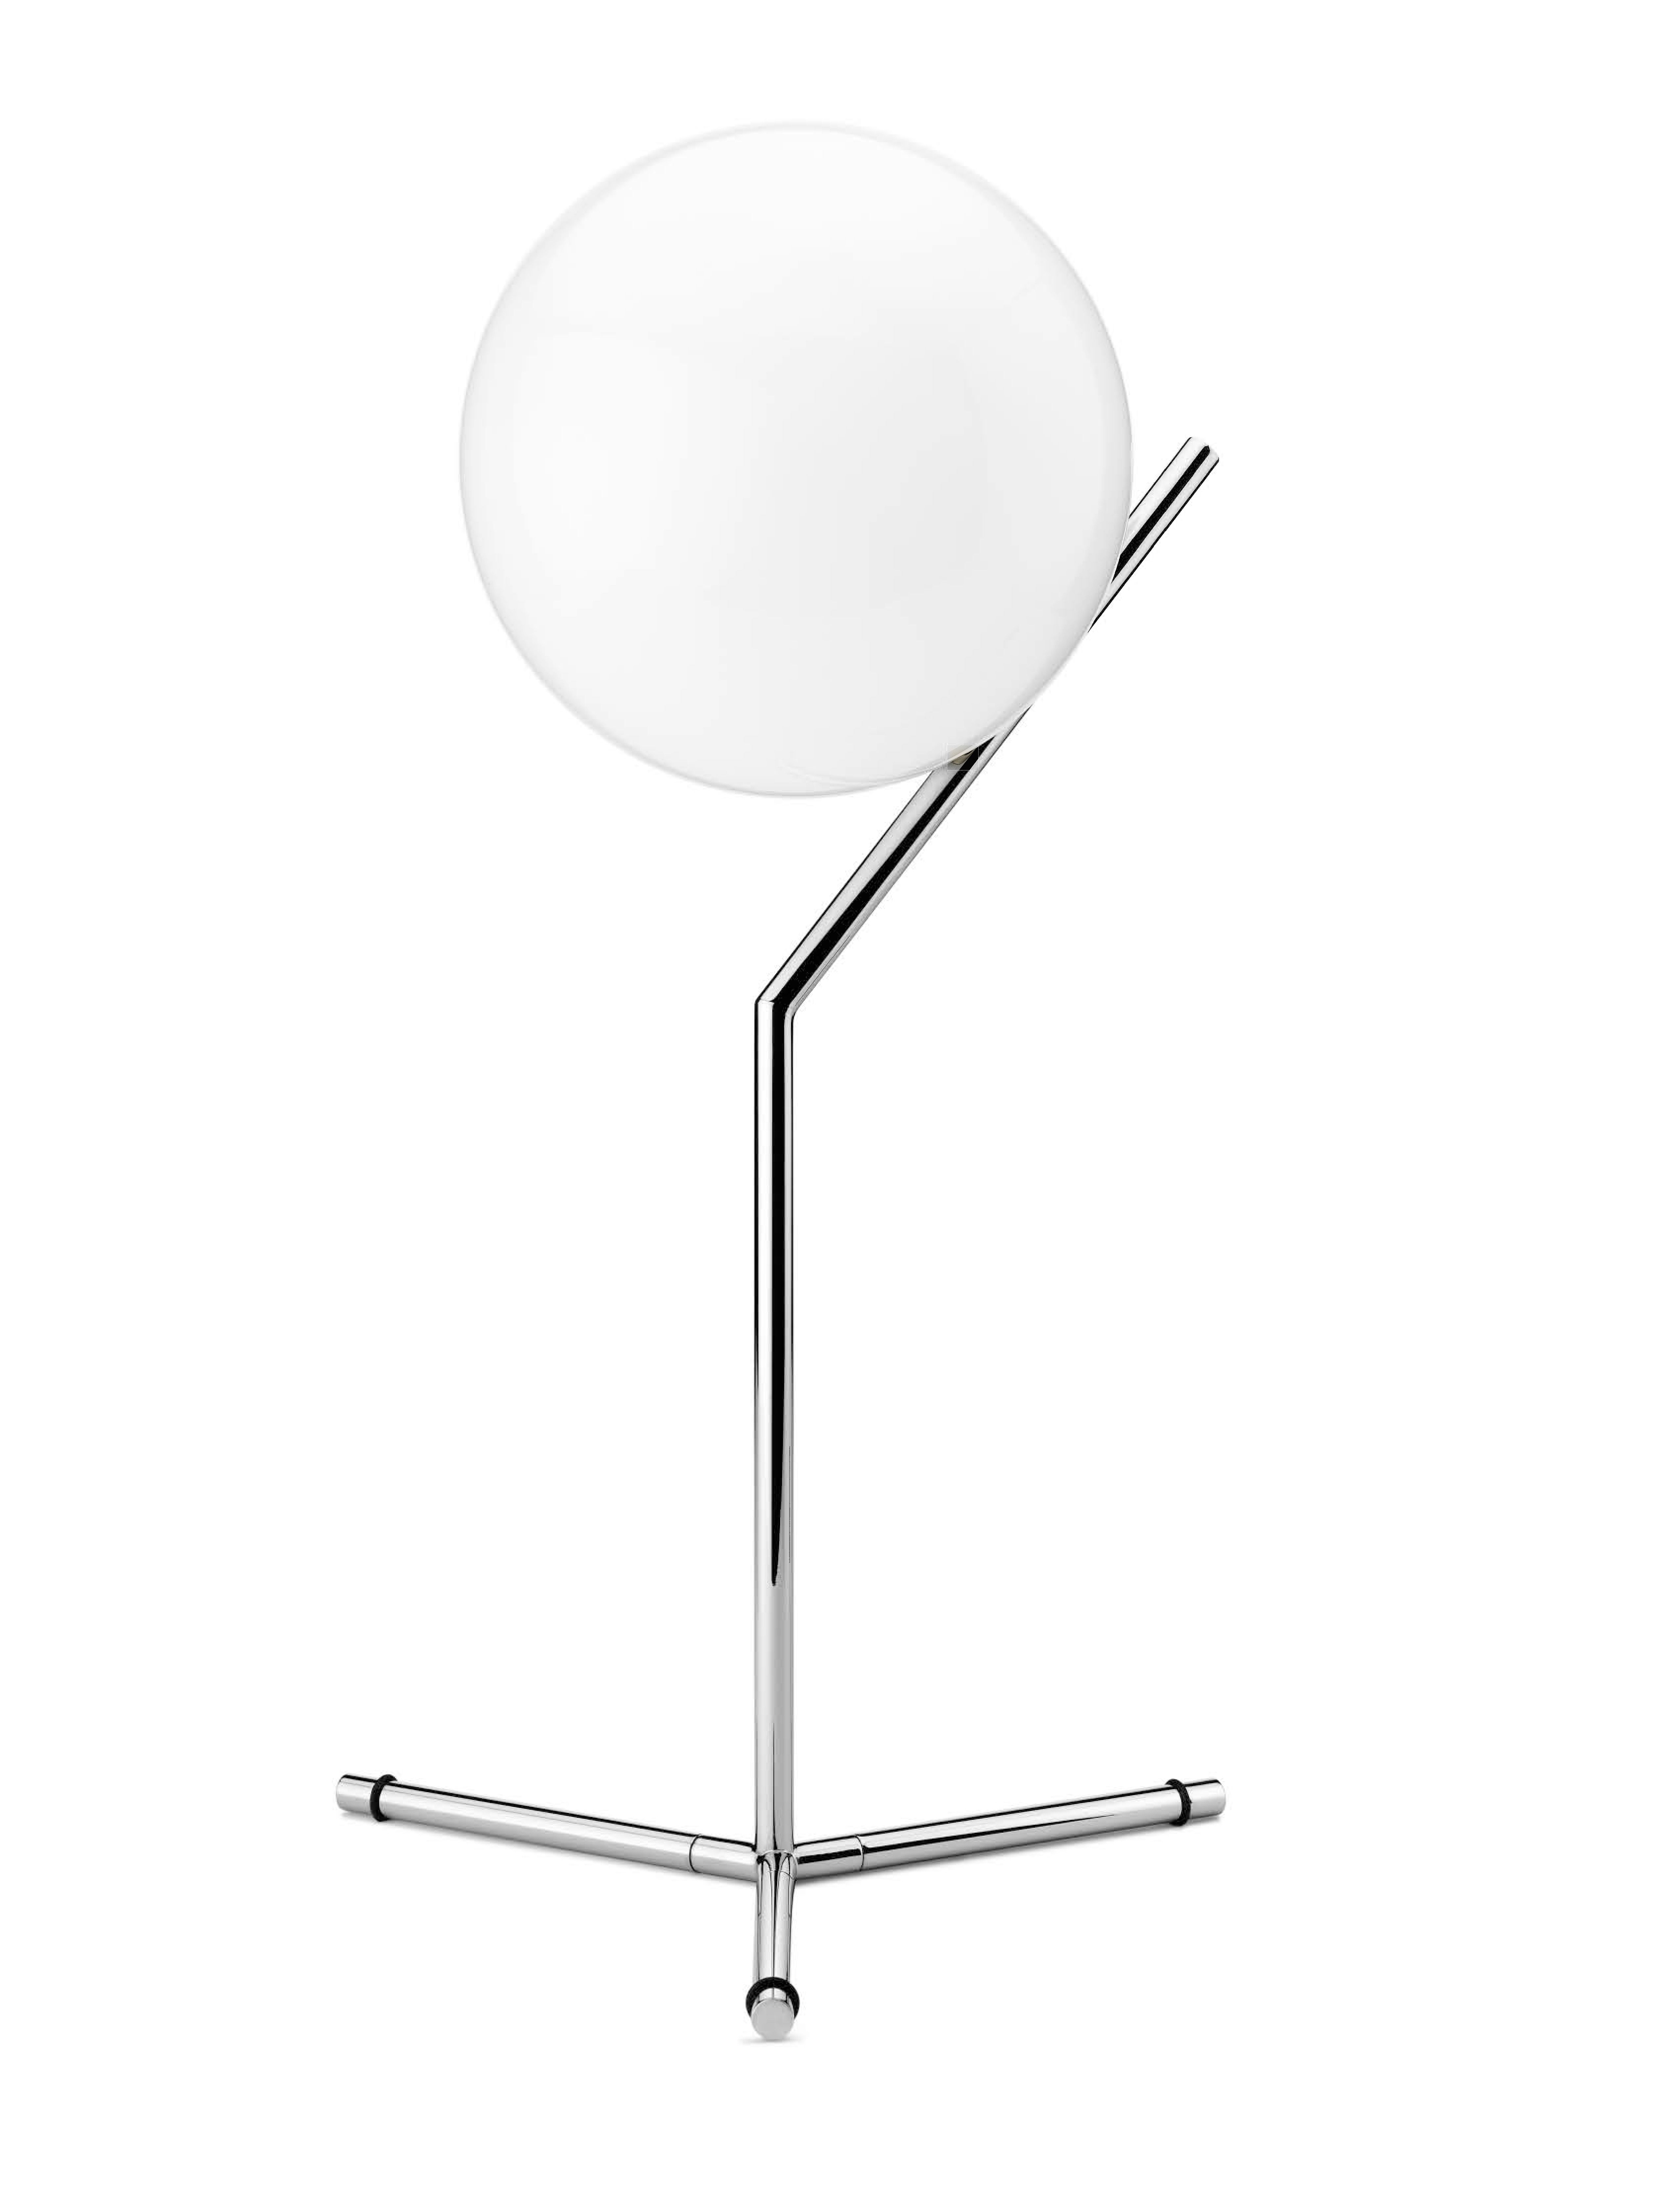 IC Light T1 High Chrome designed by Michael Anastassiades for Flos Lighting  sc 1 st  Pinterest & IC Light T1 High Chrome designed by Michael Anastassiades for Flos ... azcodes.com